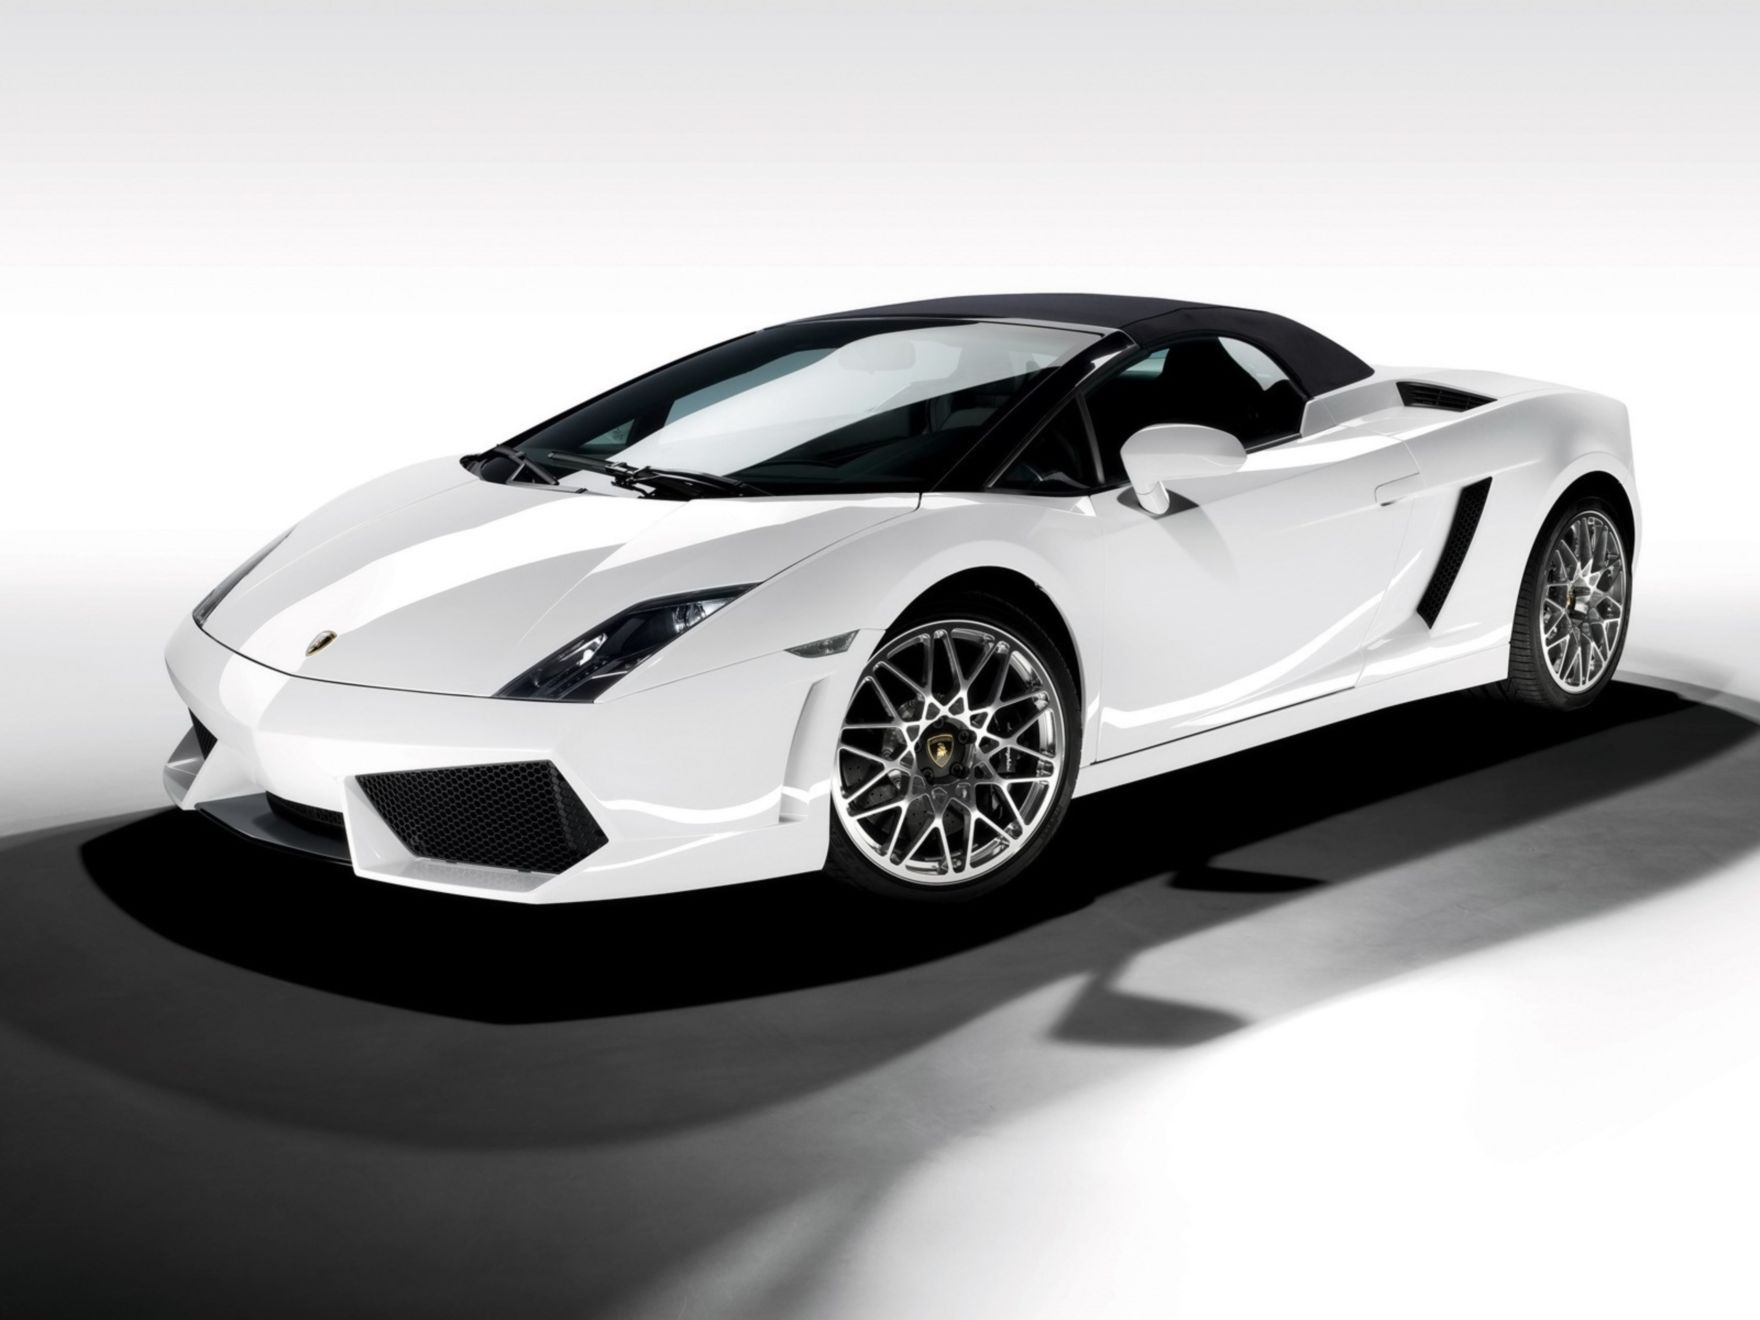 Download free HD 2009 Lamborghini Gallardo Lp560 4 Spyder Normal Wallpaper, image